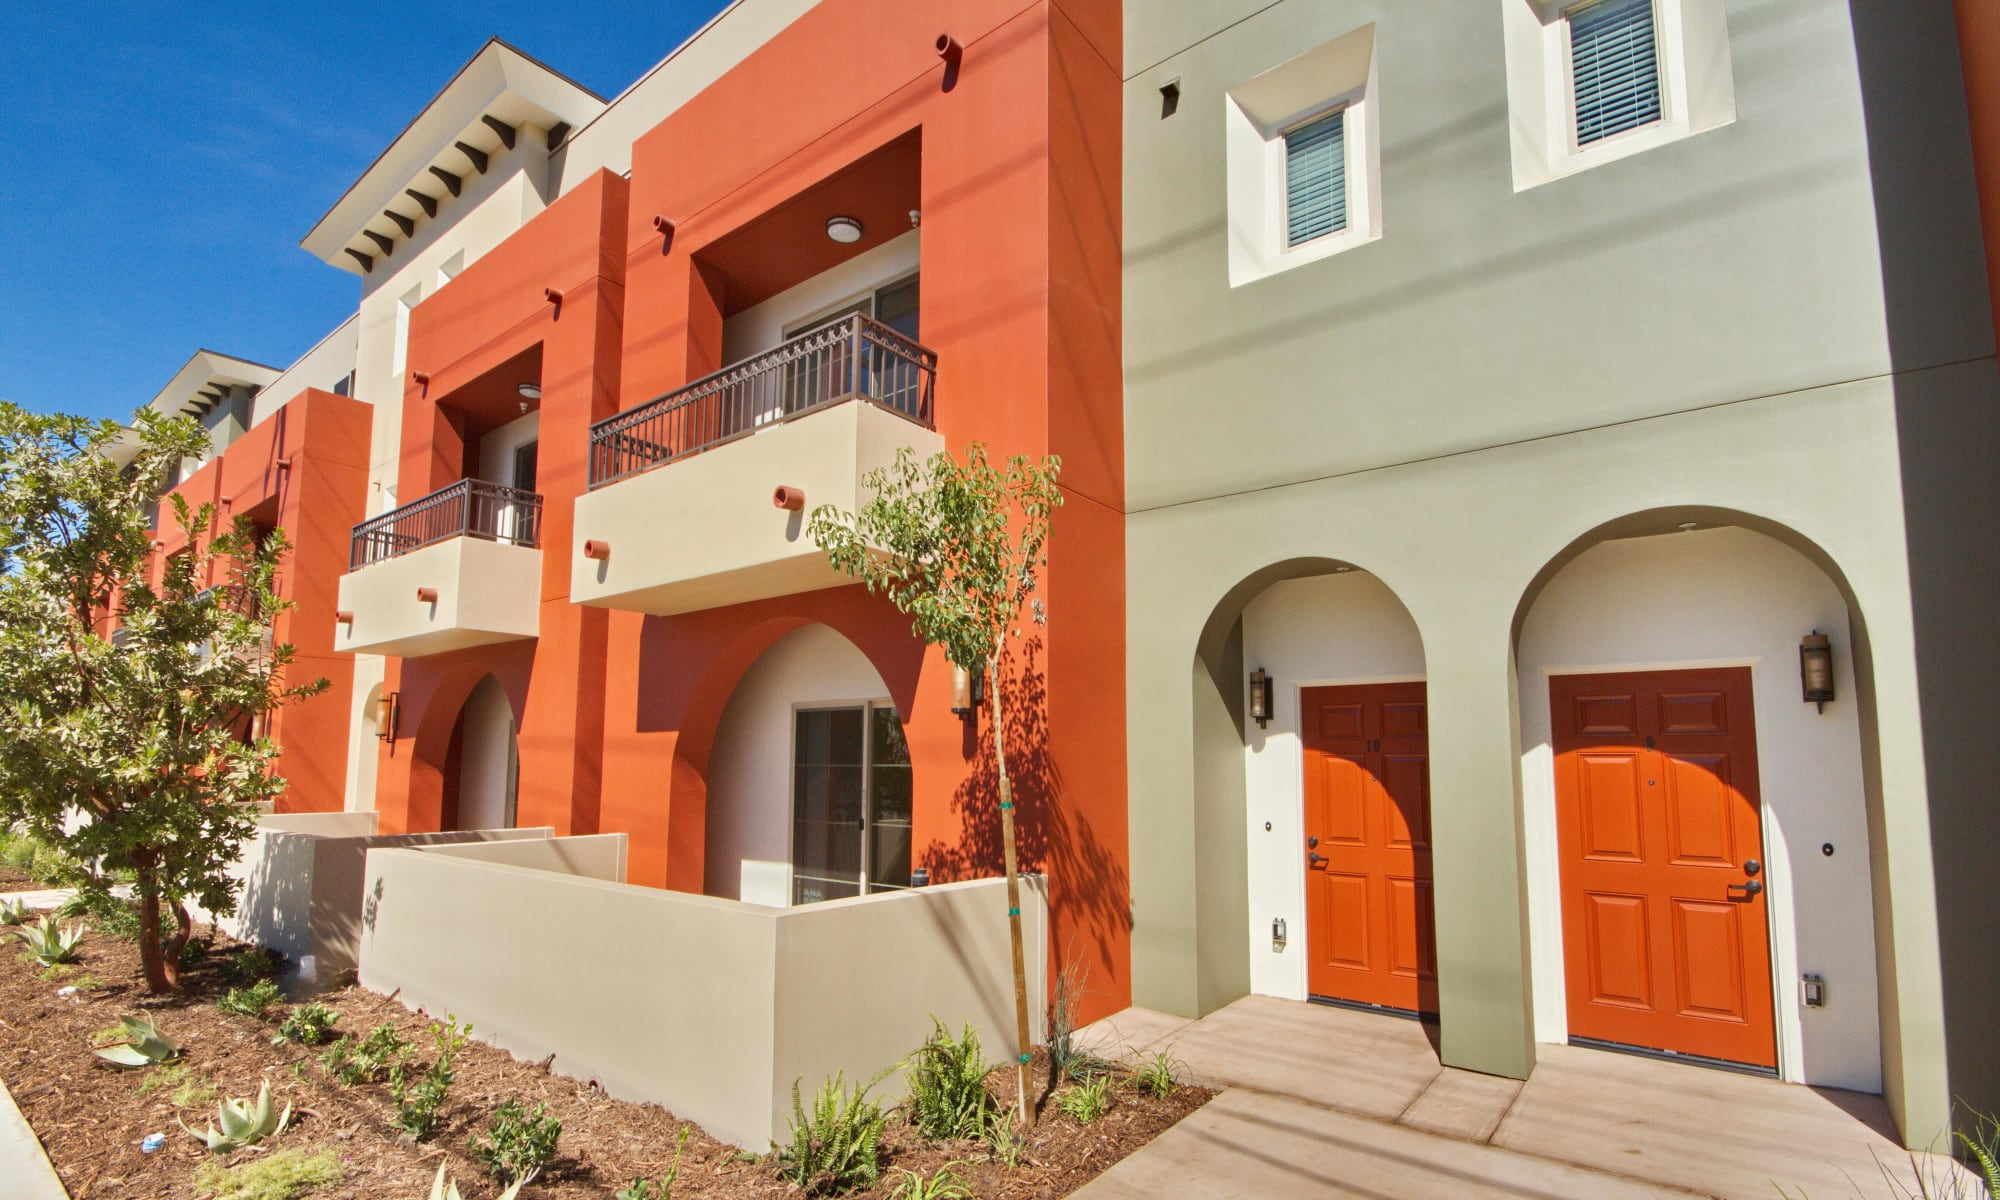 Learn more about our apartment community at IMT Townhomes at Magnolia Woods in Sherman Oaks